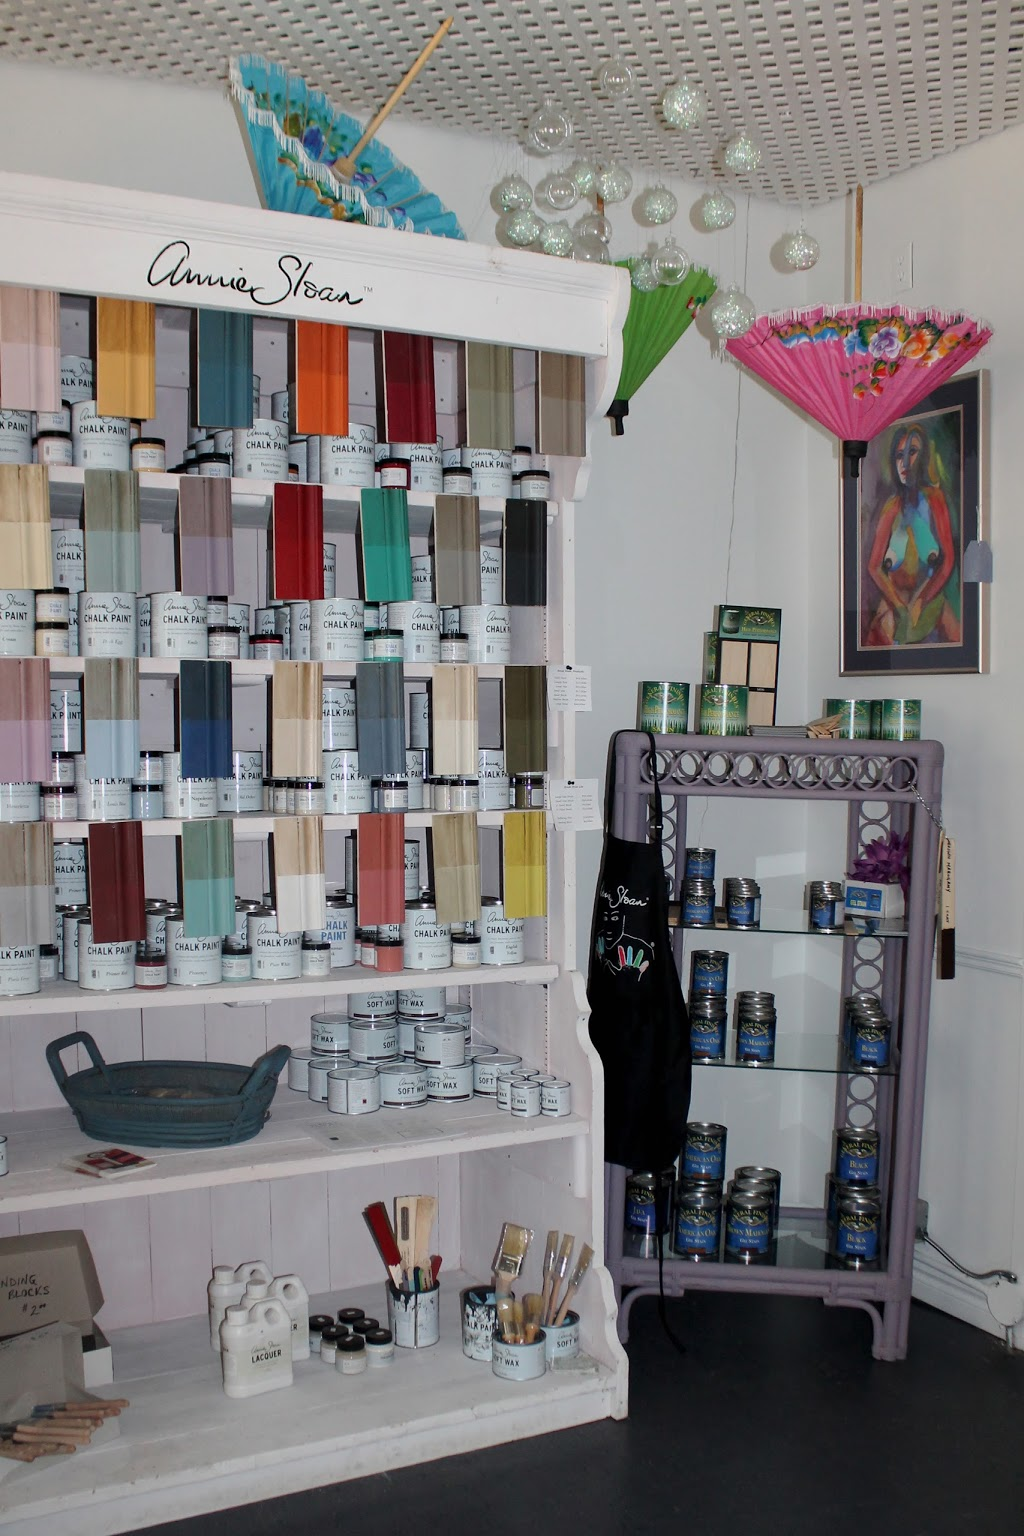 Painted Treasures | home goods store | 302 Davis St, Sarnia, ON N7T 1B7, Canada | 5194915200 OR +1 519-491-5200